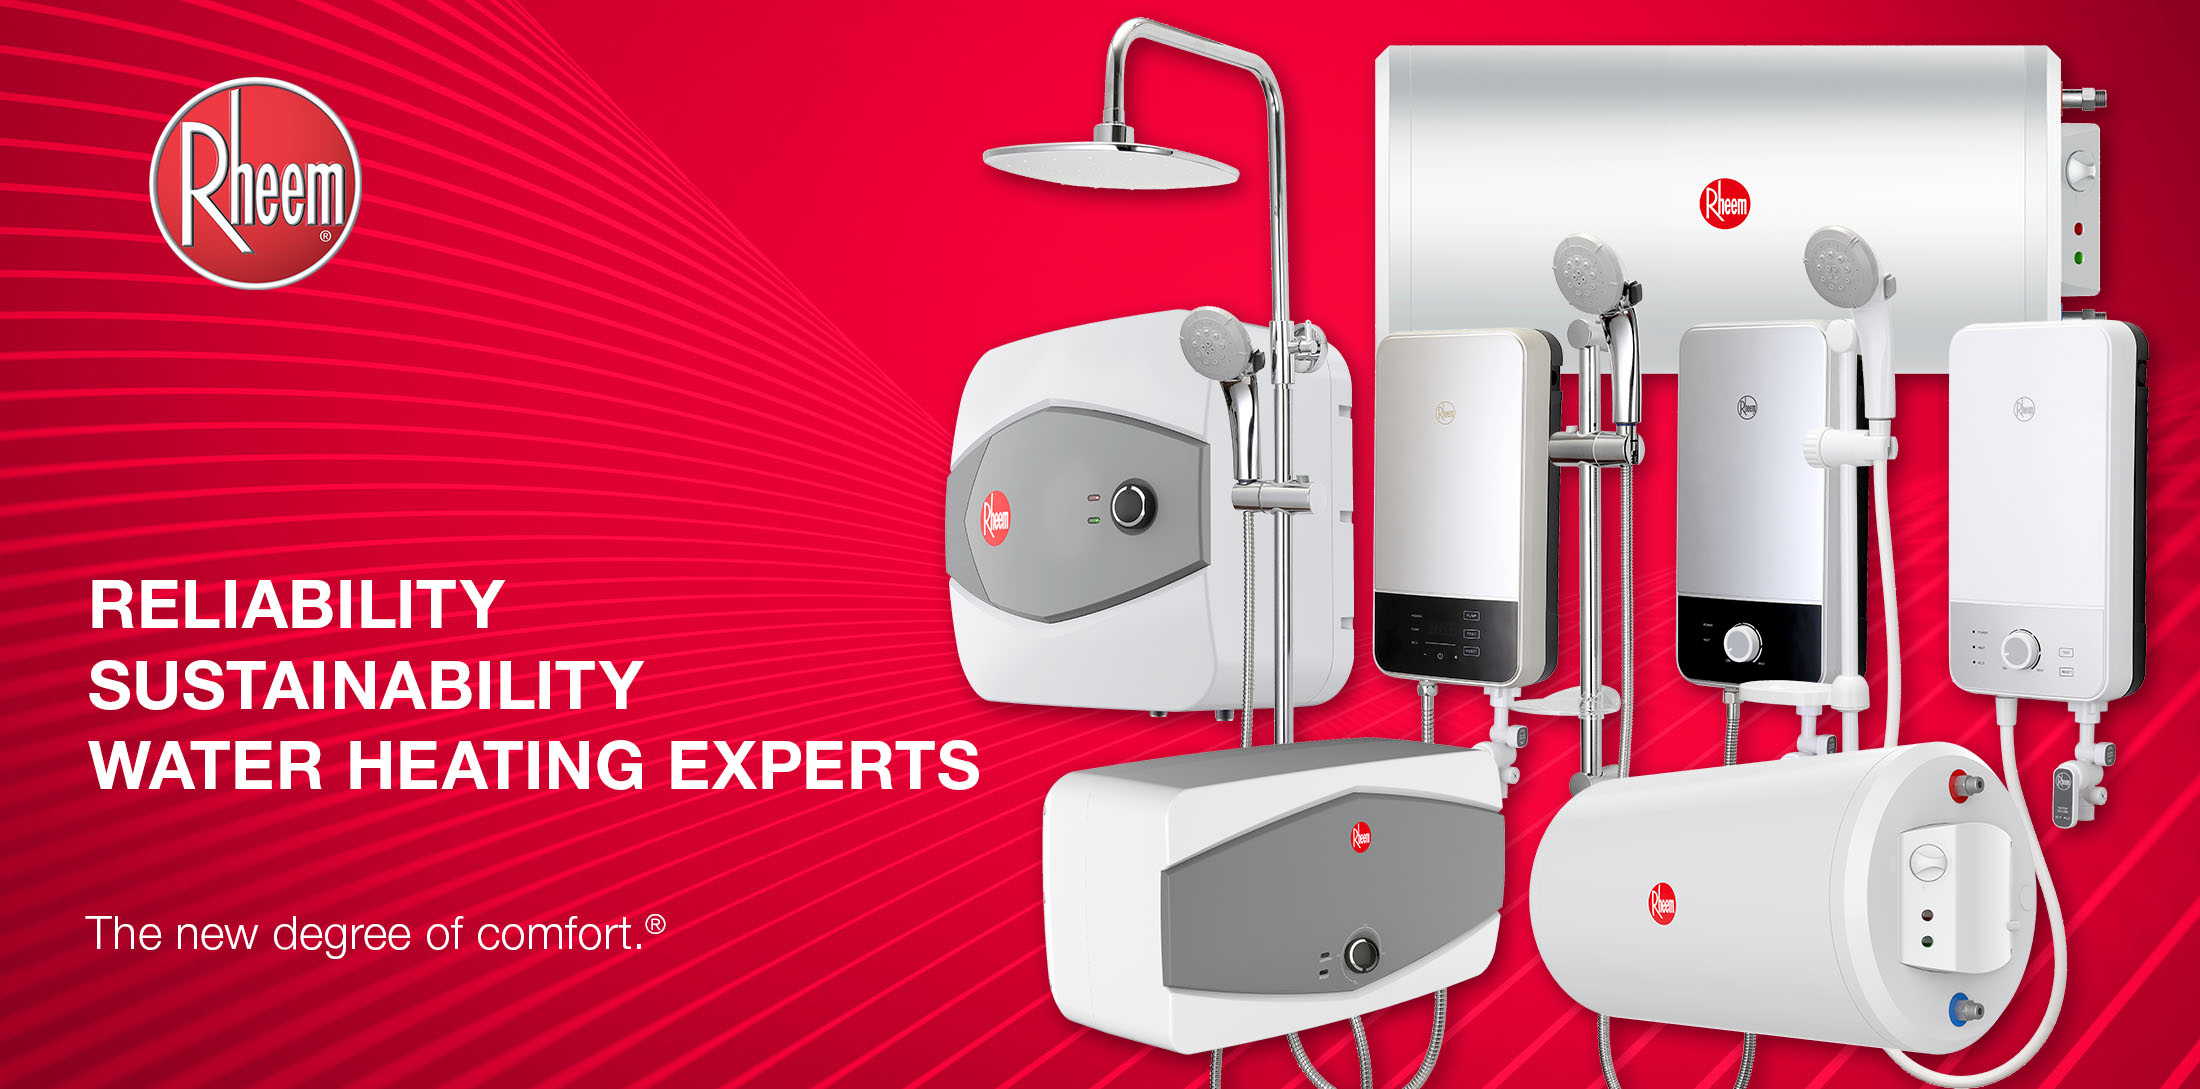 Water heater products by Rheem Singapore